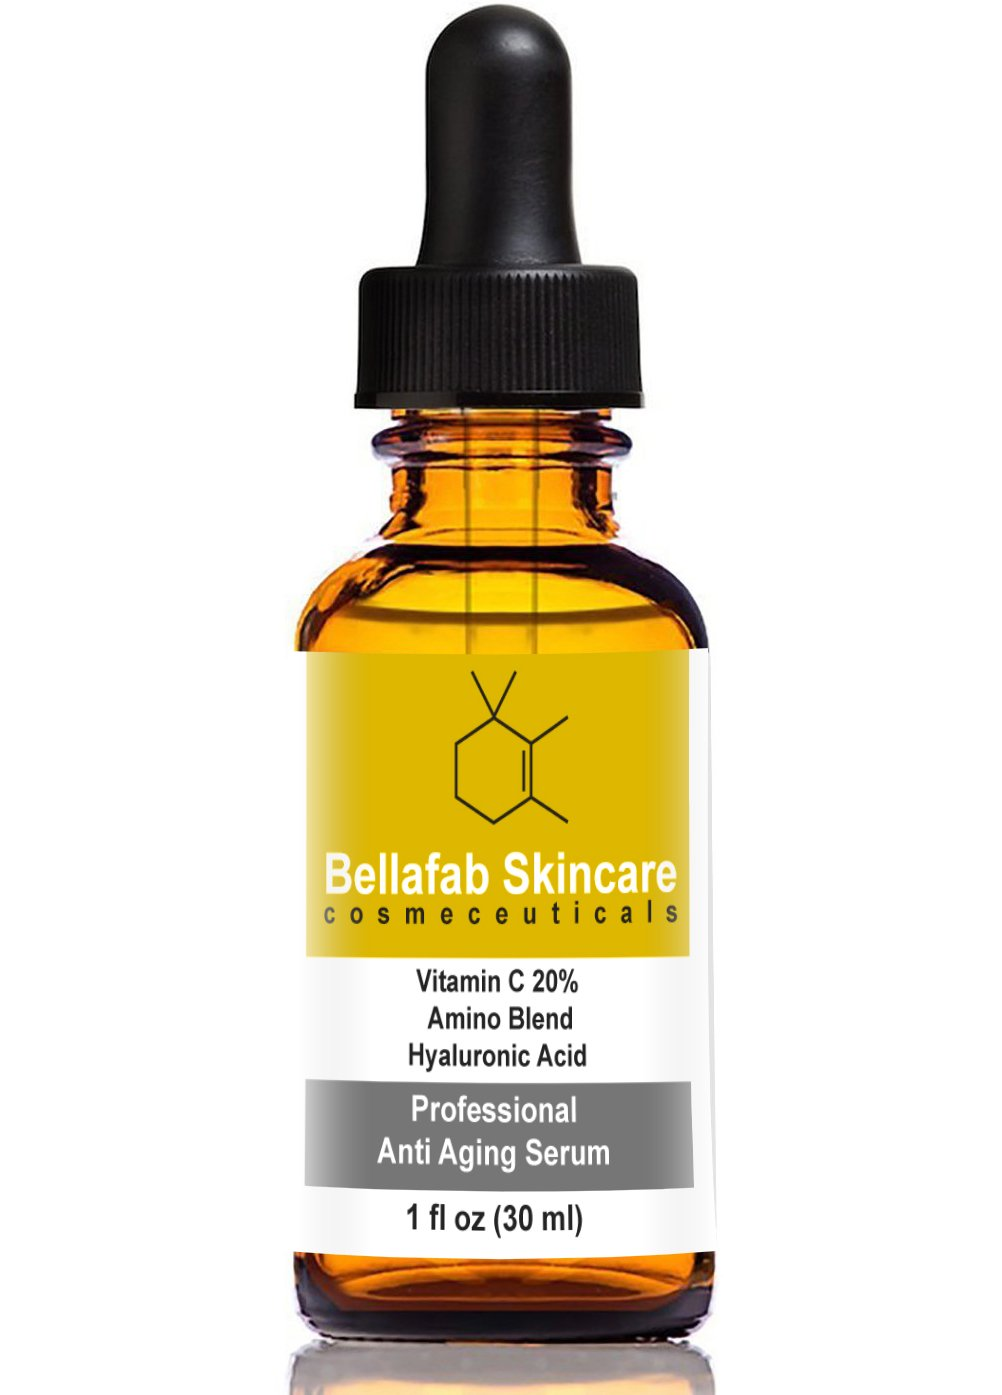 Bellafab Skincare Vitamin C Serum (20%) Innovative Beauty Products w/ Amino Acids & Hyaluronic Acid – Reduce the Look Of Wrinkles, Fine Line, & Dark Spots